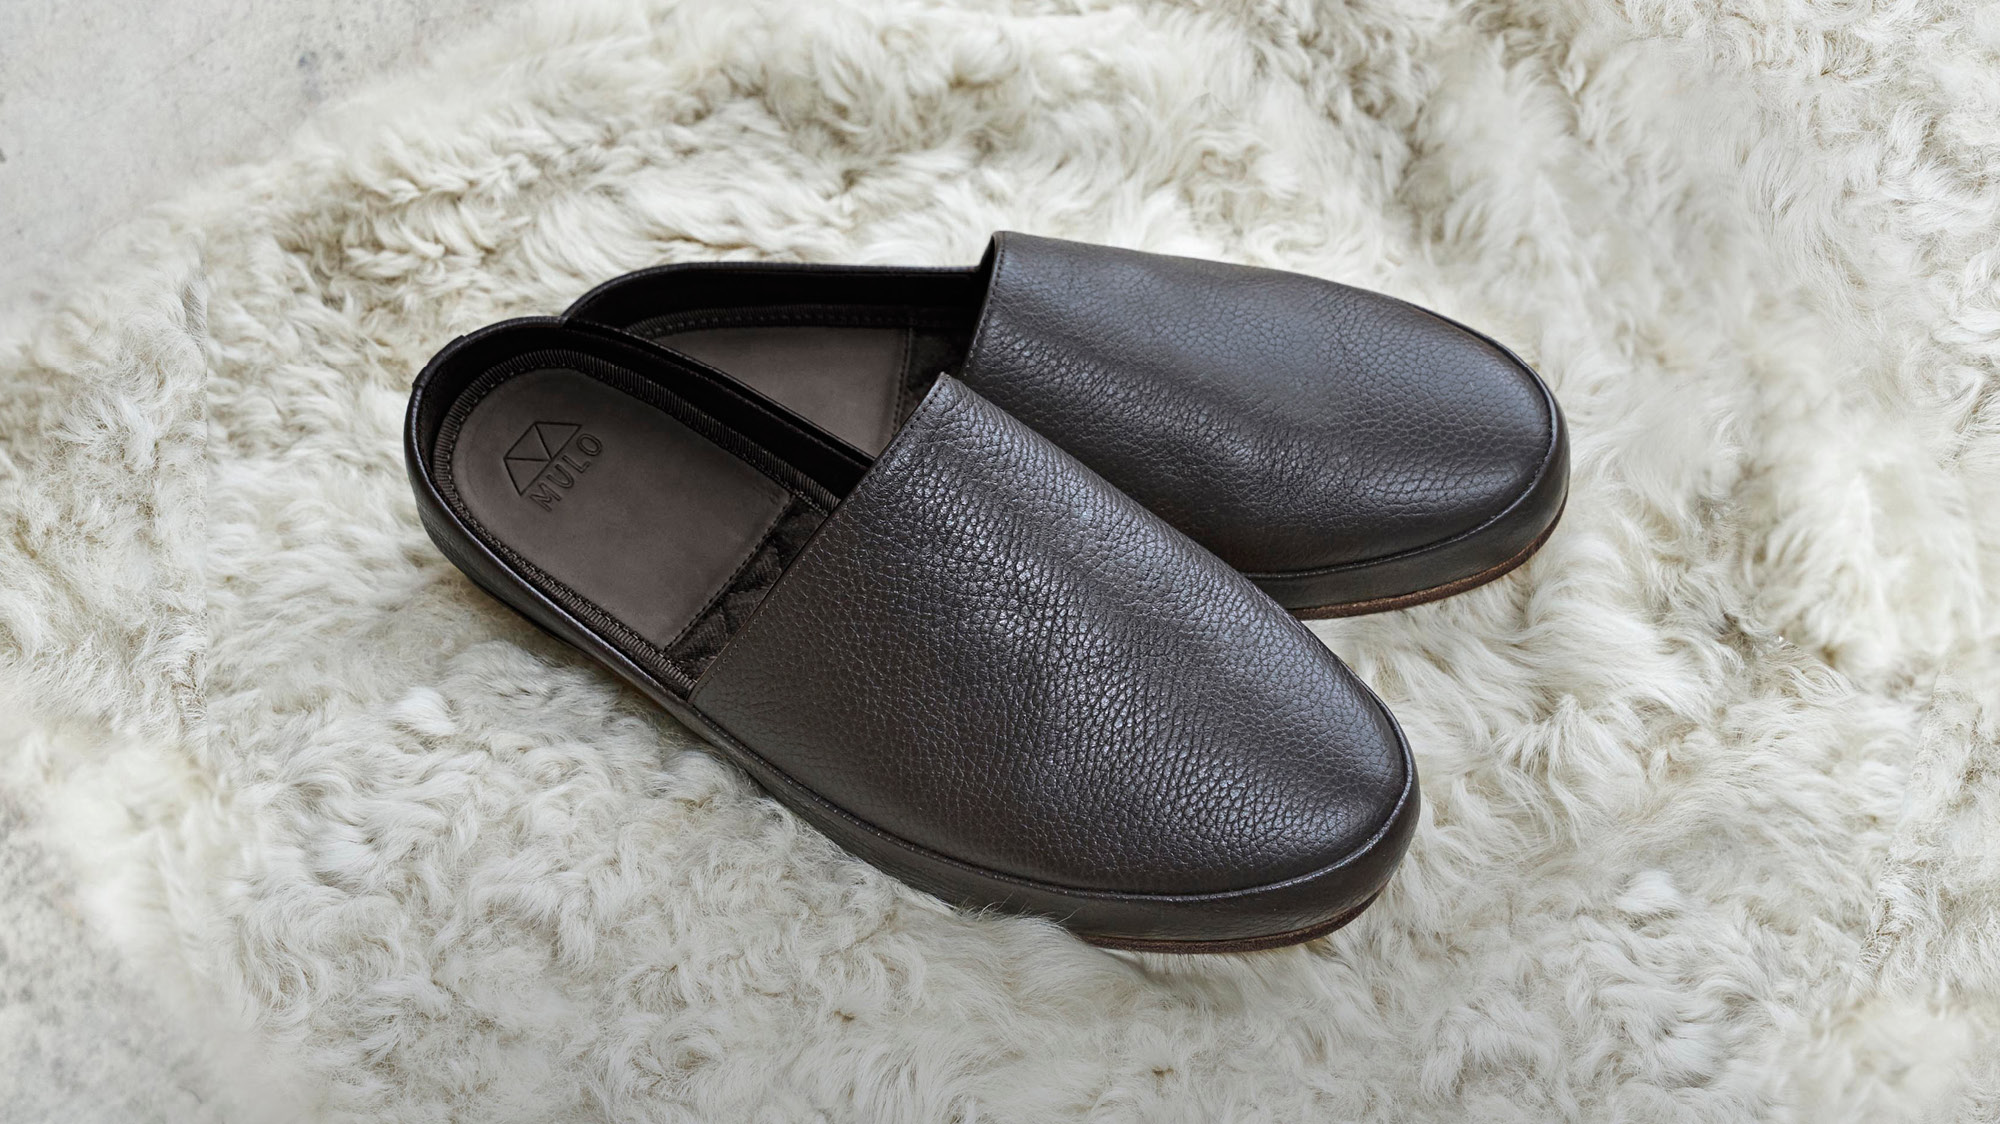 Gifts for Him - Leather Mens Slippers